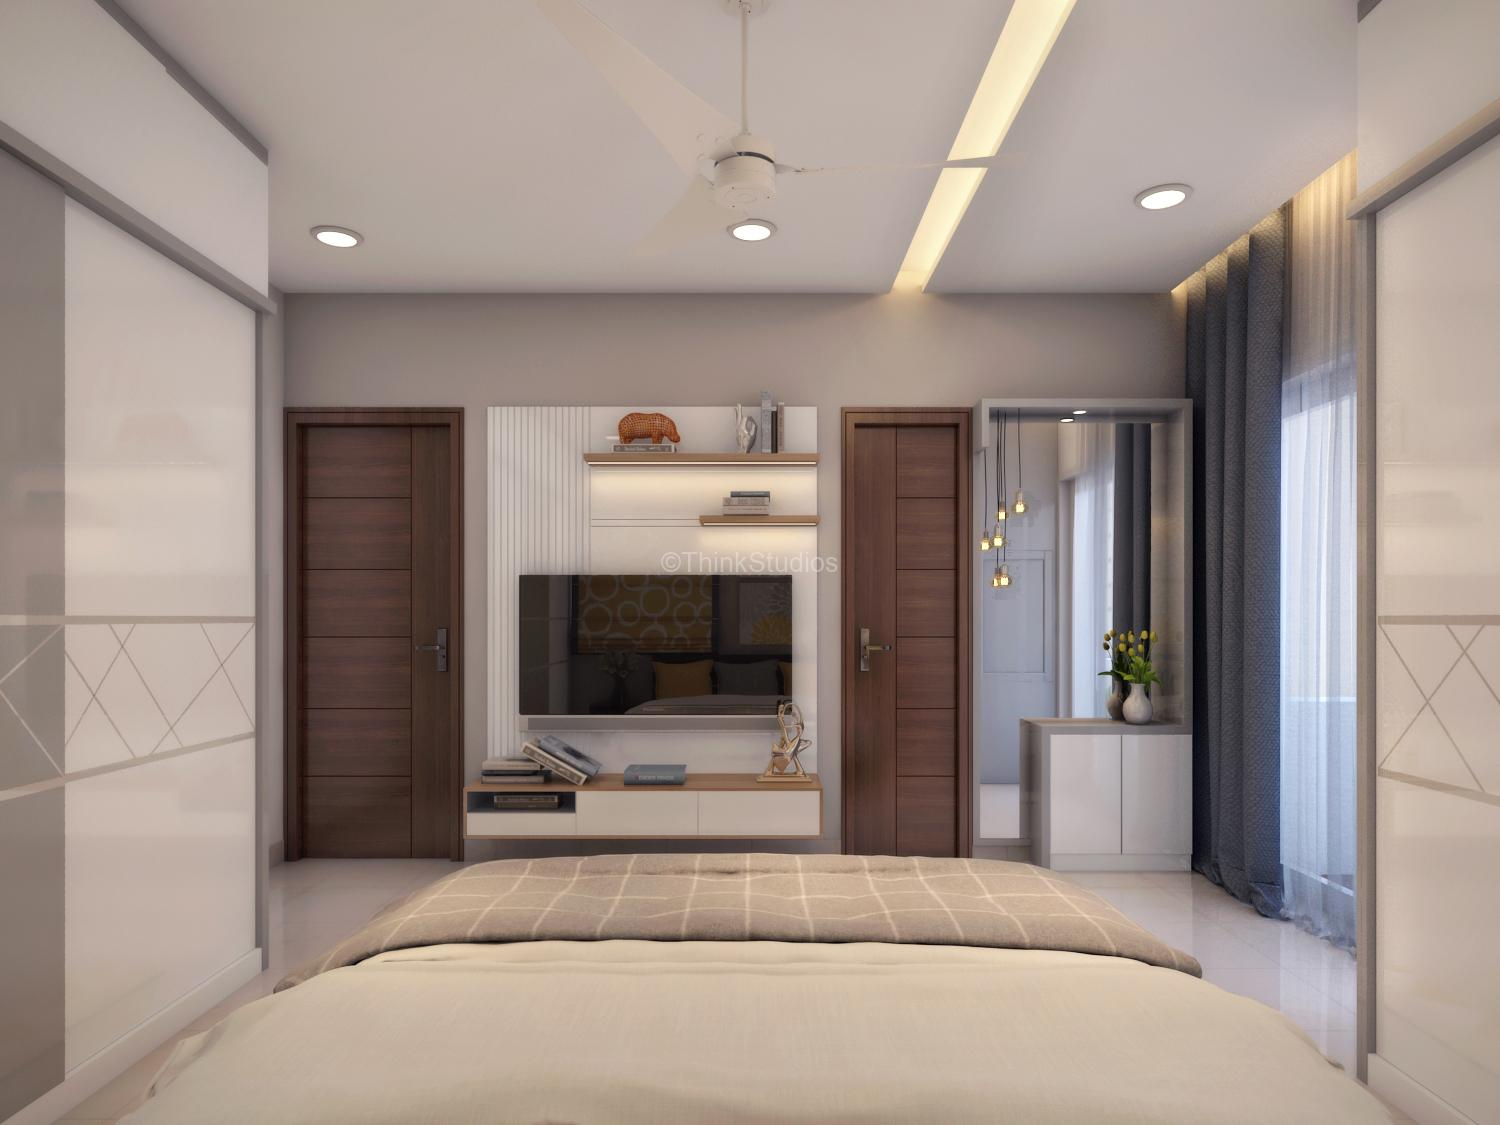 Renovation of Residential Bungalow Interiors_Bungalow in Bangalore _1